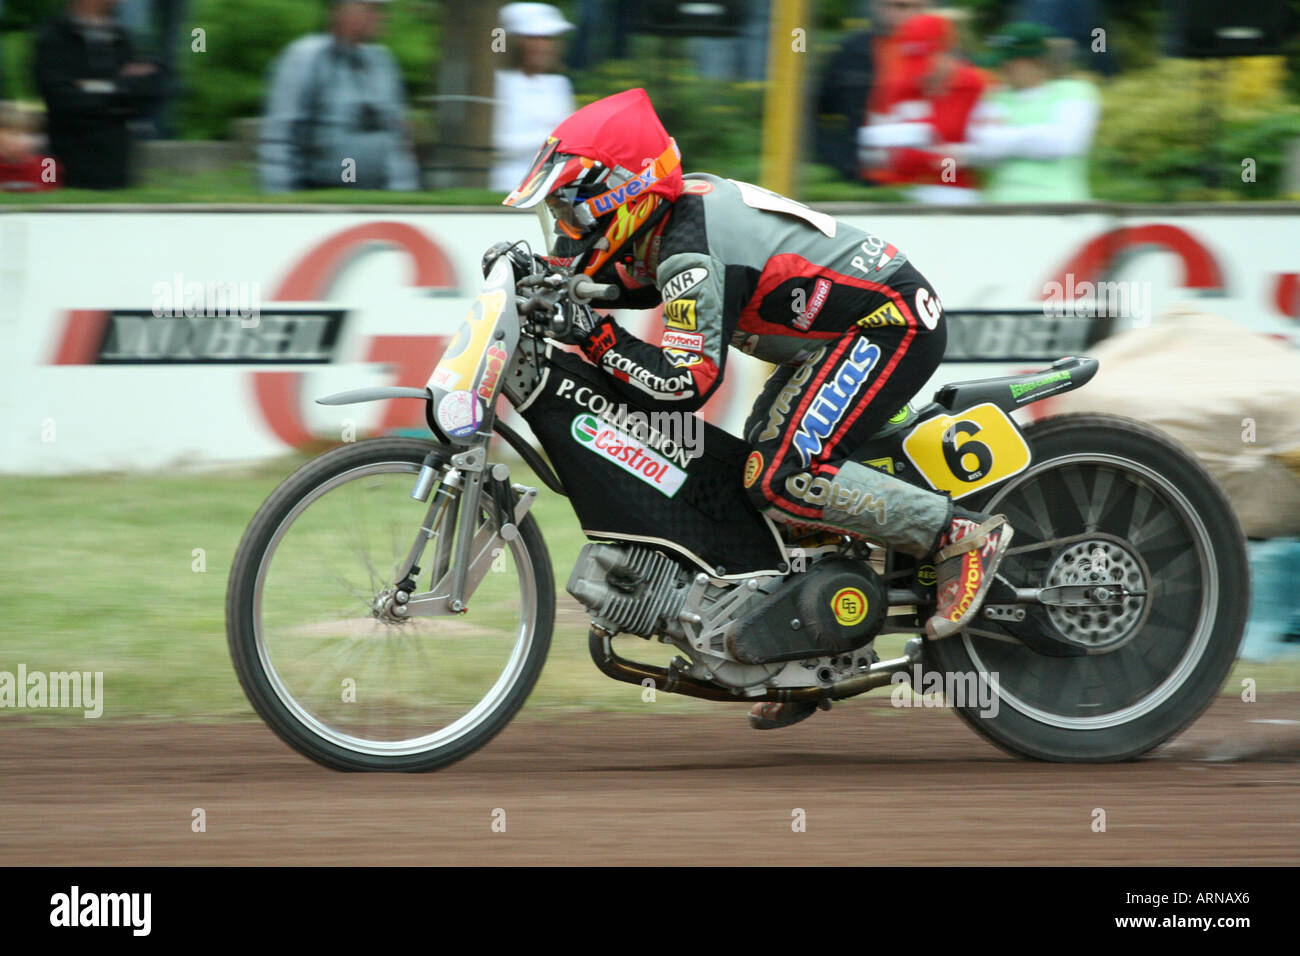 Gerd Riss of the MSV Herxheim at the 106. ADAC-Motorcycle-sandtrackrace in Herxheim, Rhineland-Palatinate, Germany - Stock Image